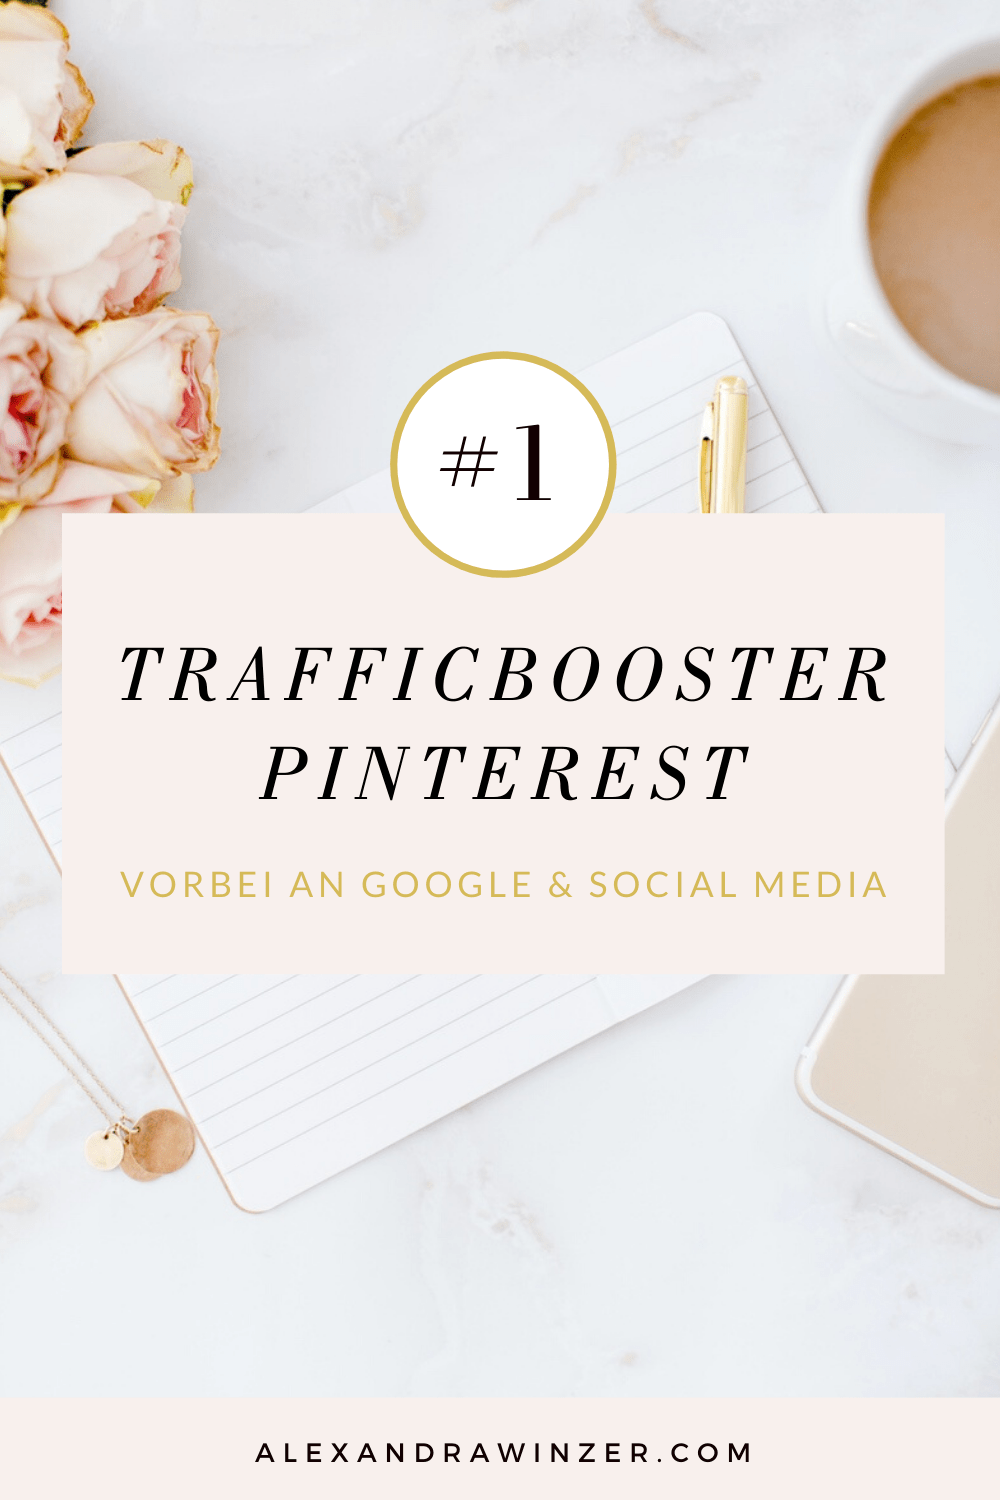 Trafficbooster Pinterest